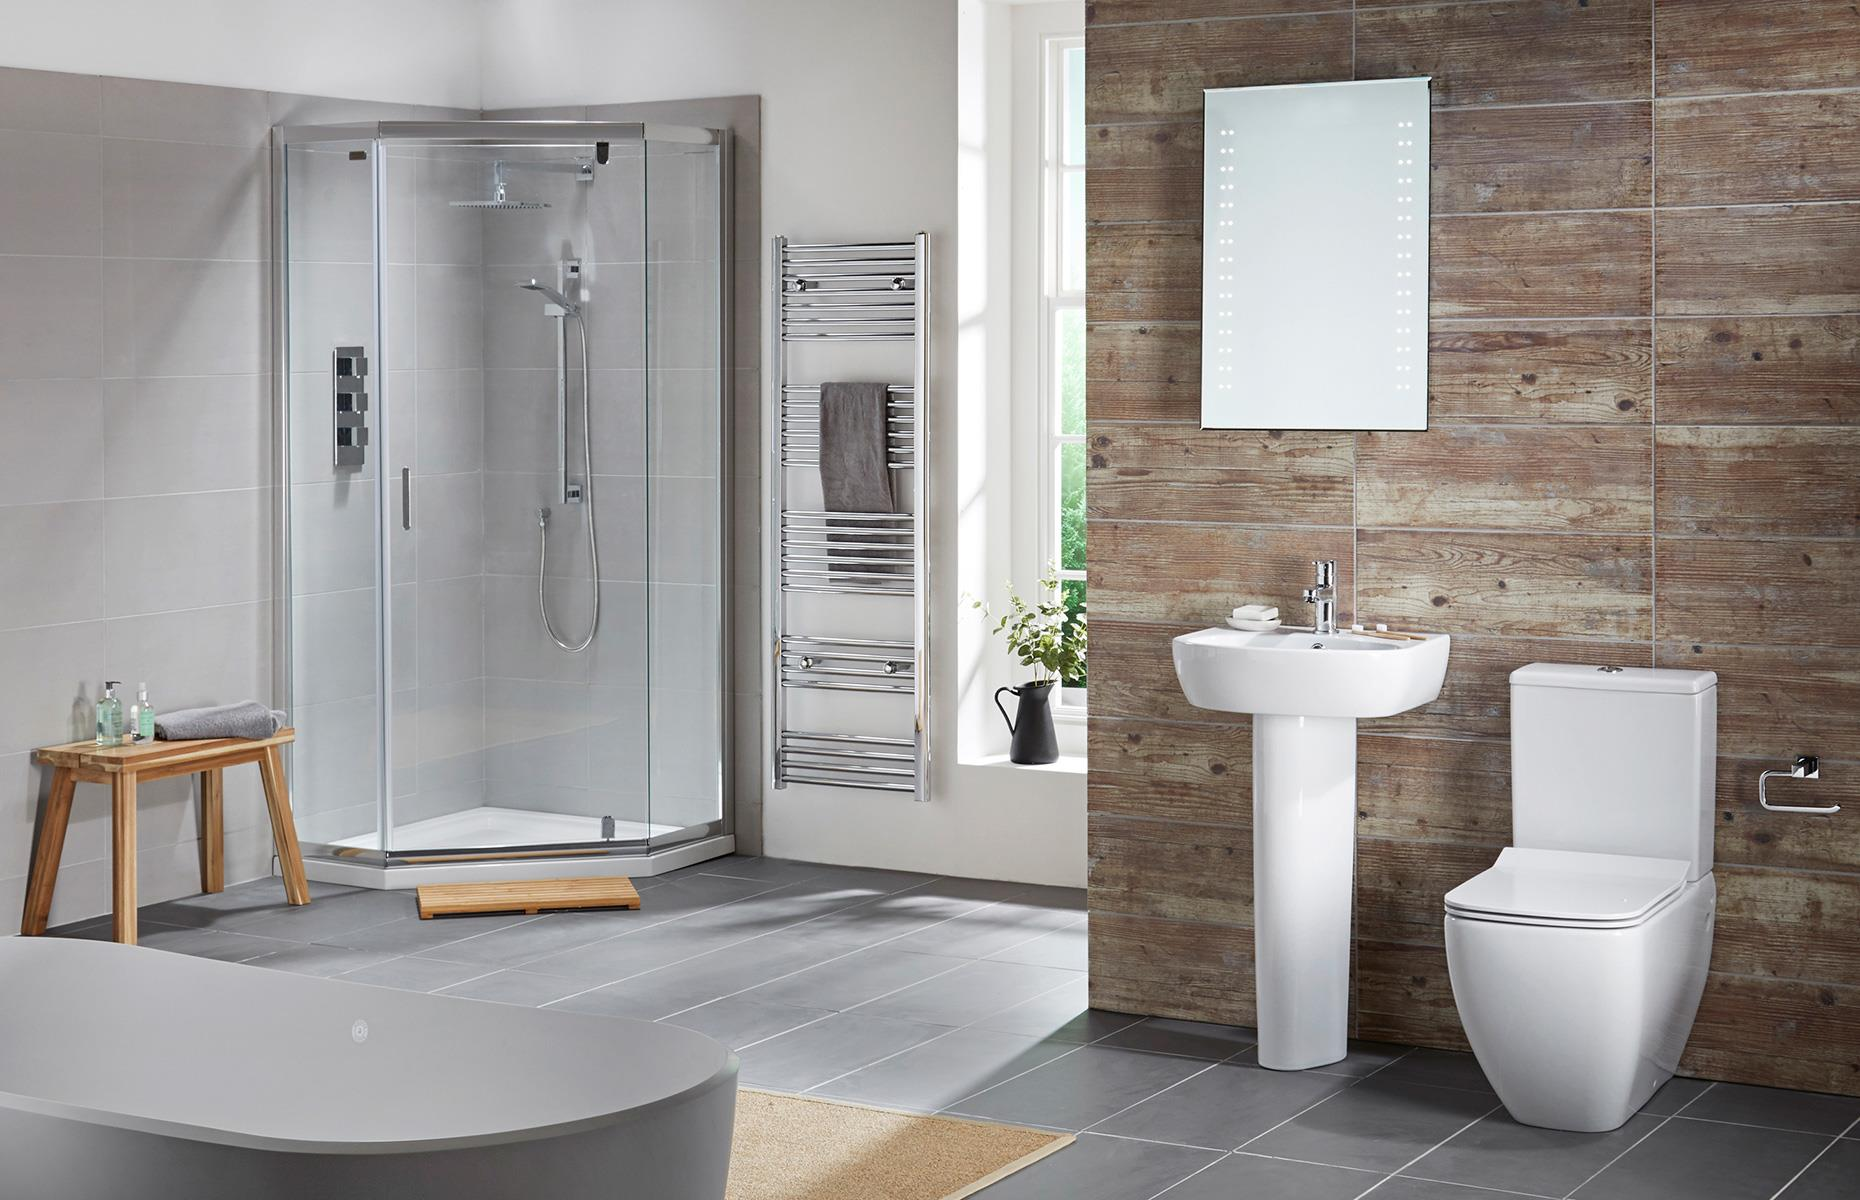 Mistakes To Avoid When Designing A Bathroom Lovepropertycom - Bathroom sink drain installation mistakes to avoid